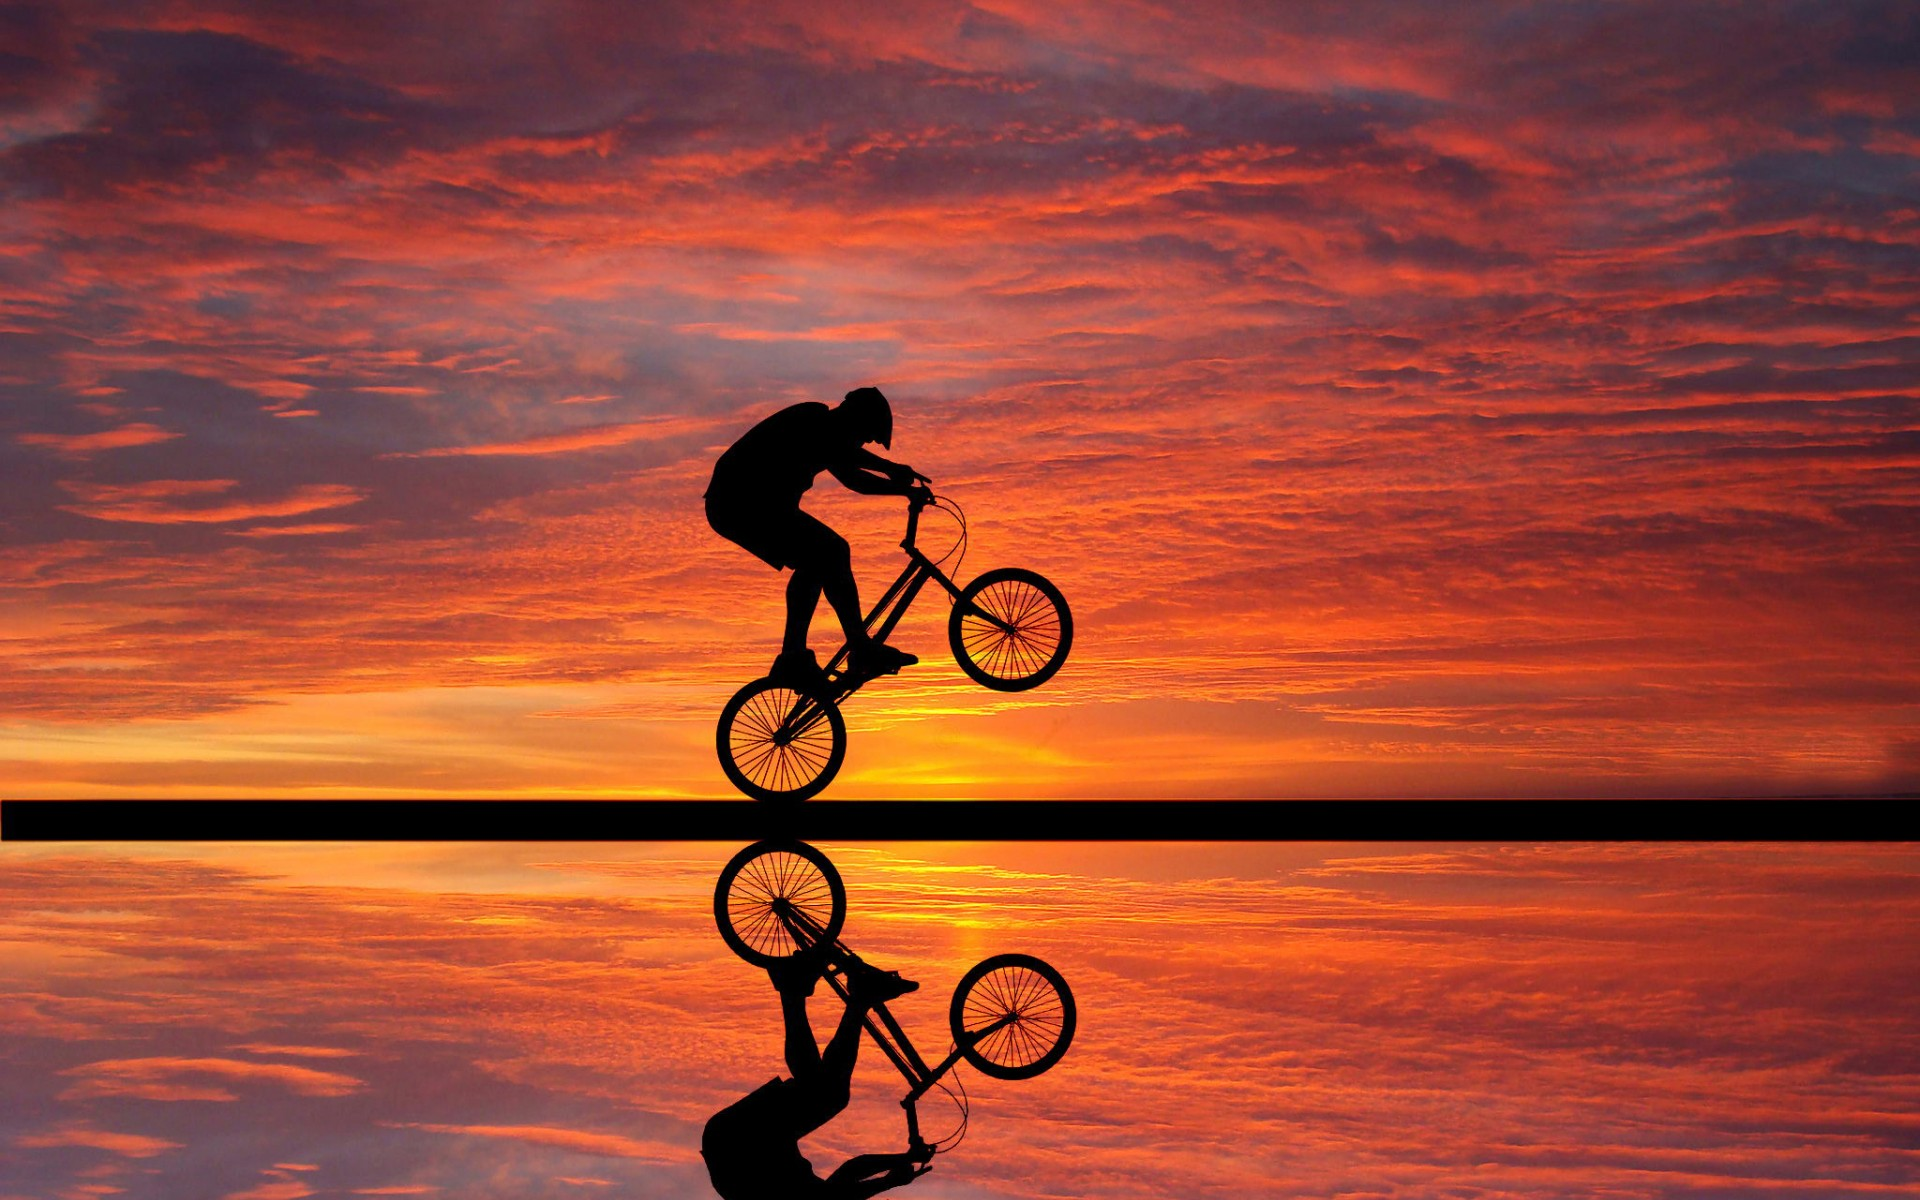 cycling sunset qhd 415 cycle wallpapers